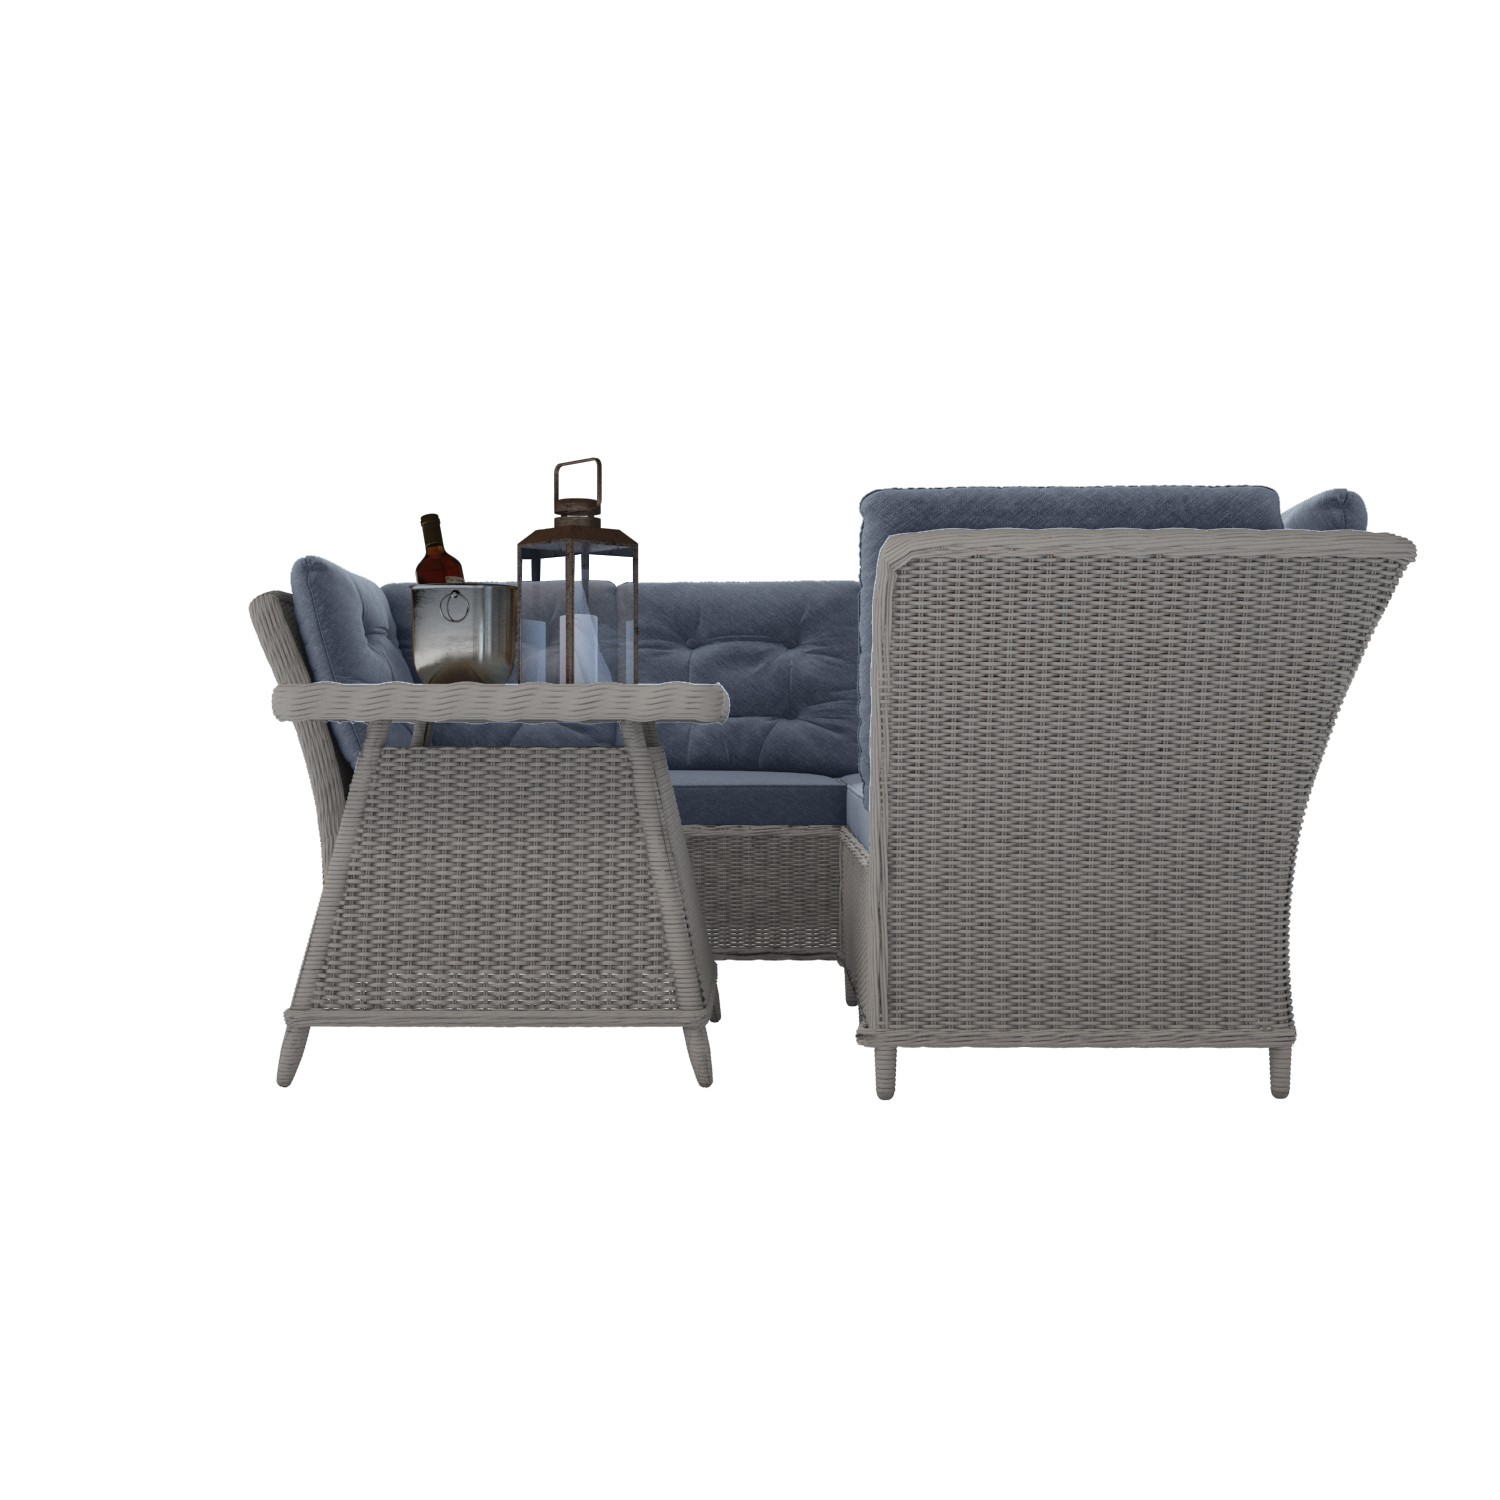 Magnificent Aspen Grey Rattan Garden Furniture Corner Sofa Table Cushions Included Interior Design Ideas Clesiryabchikinfo